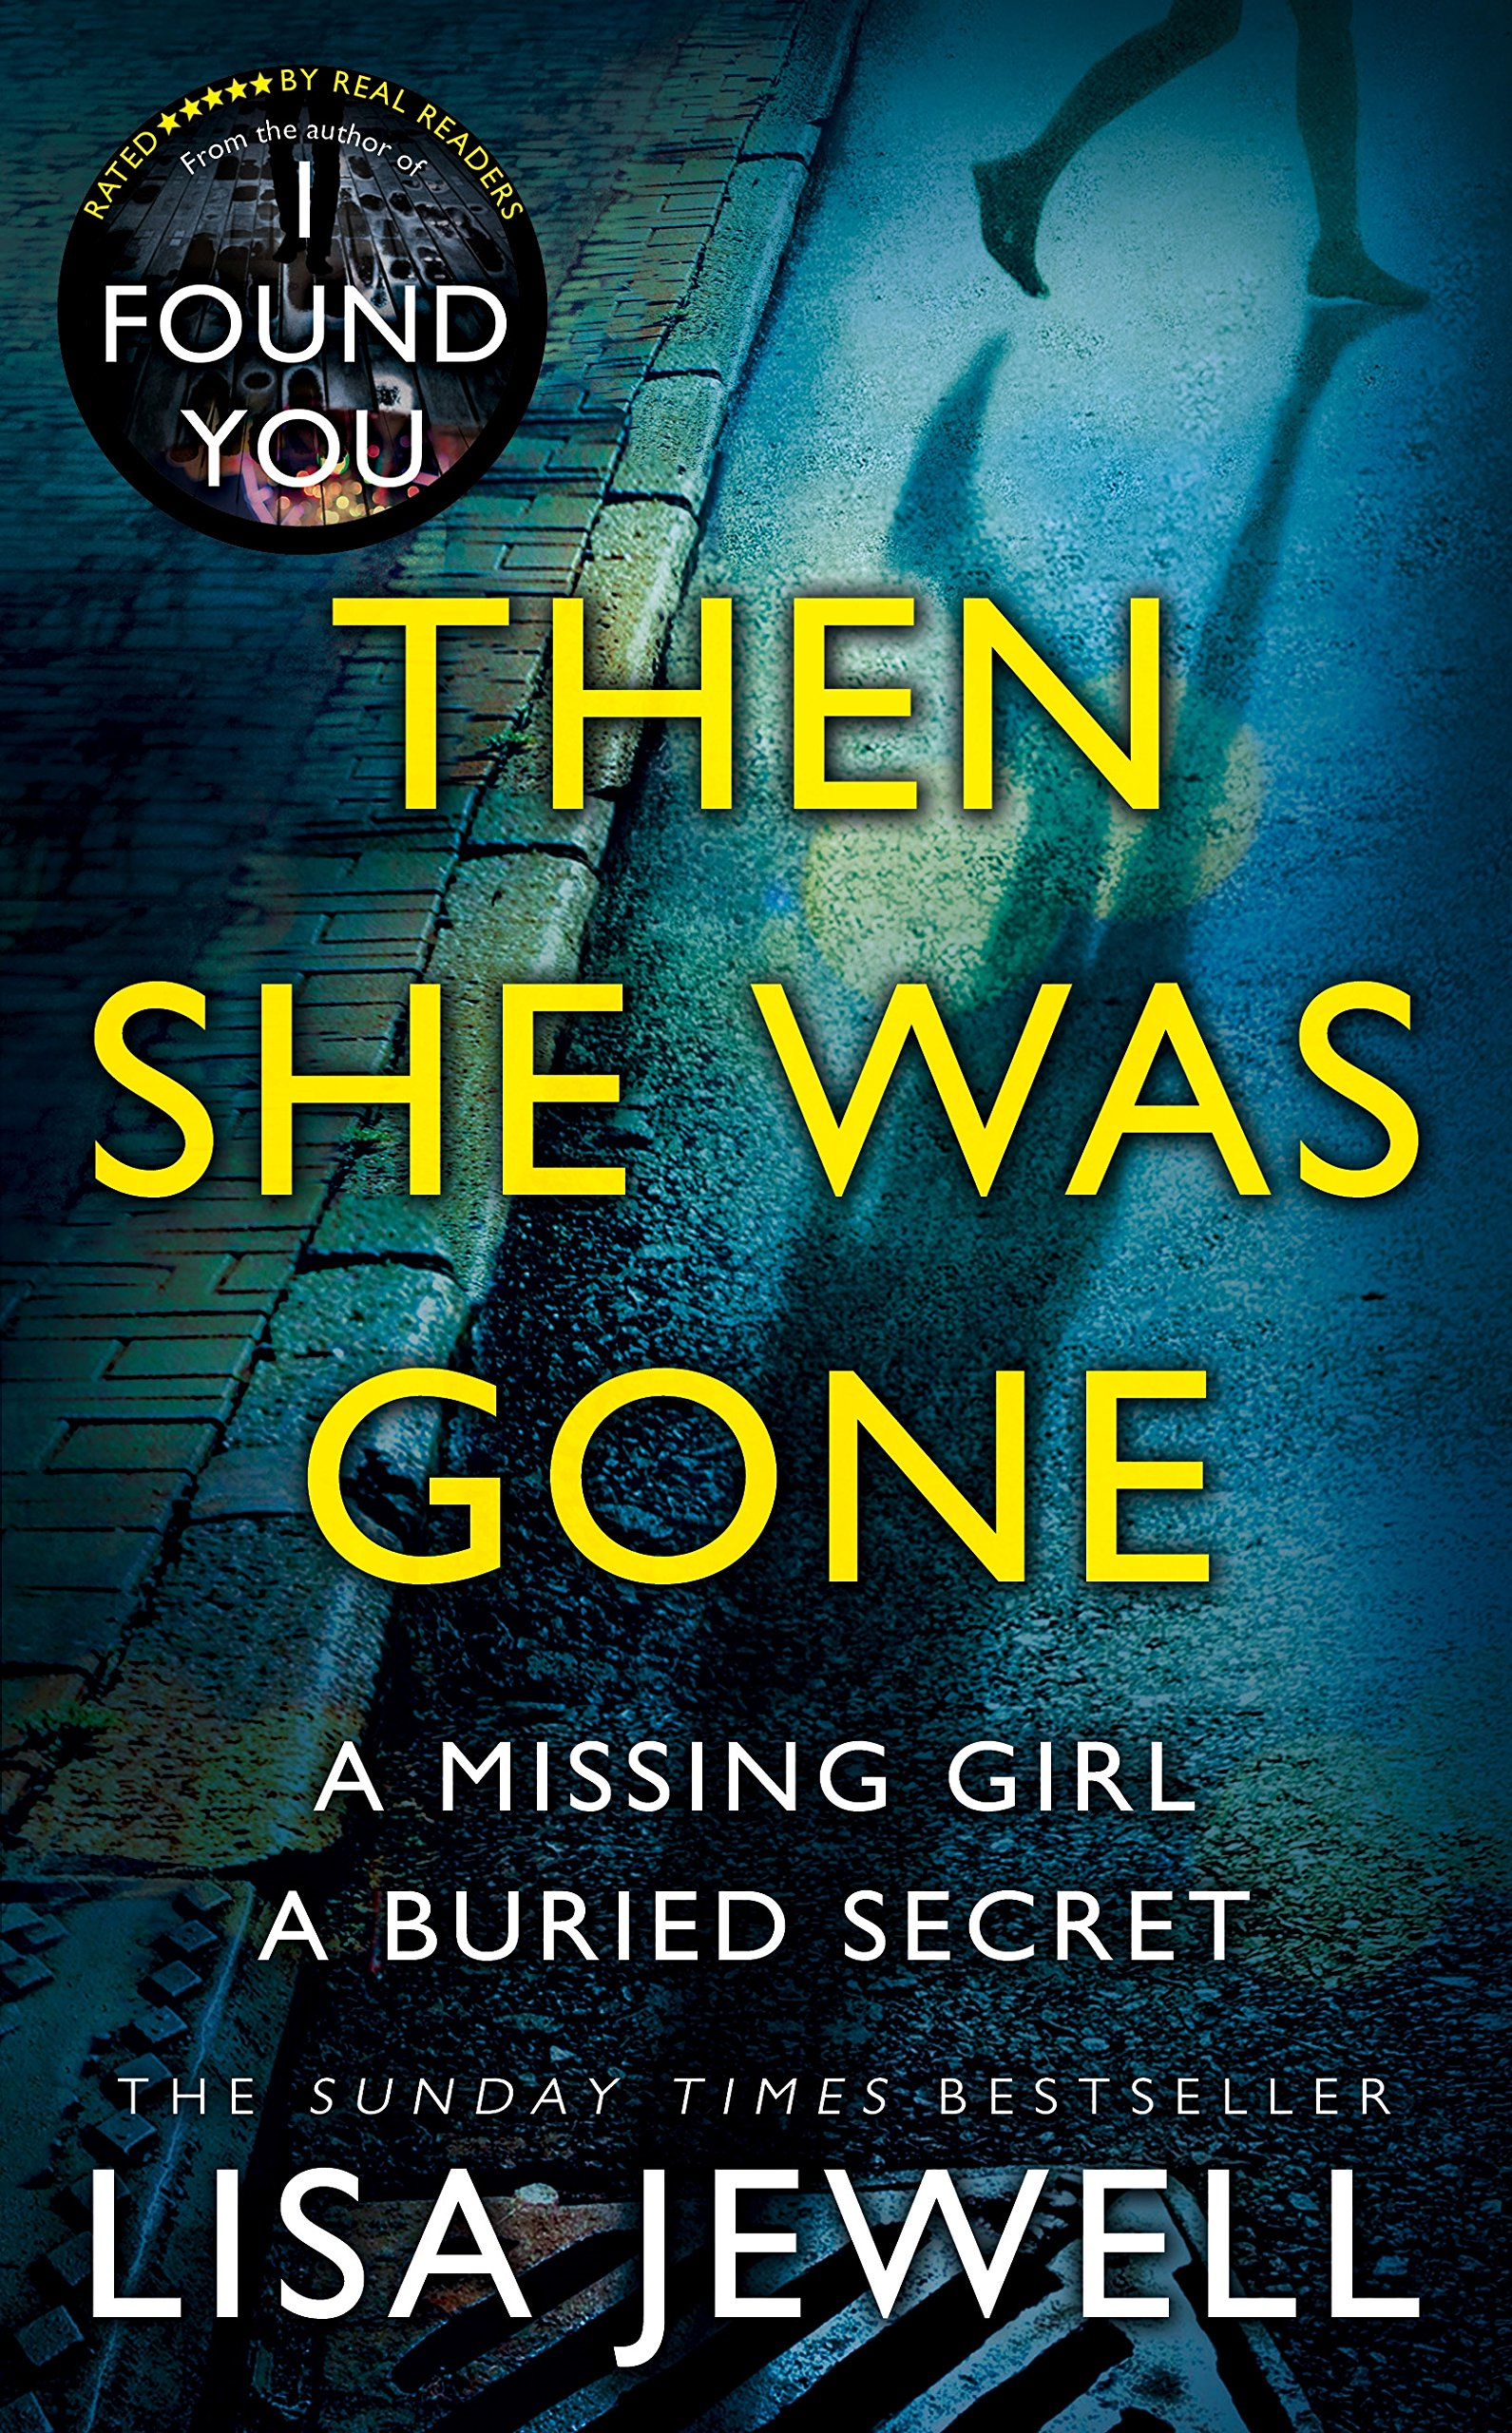 Then She Was Gone Lisa Jewell 9781780896427 Amazon Books